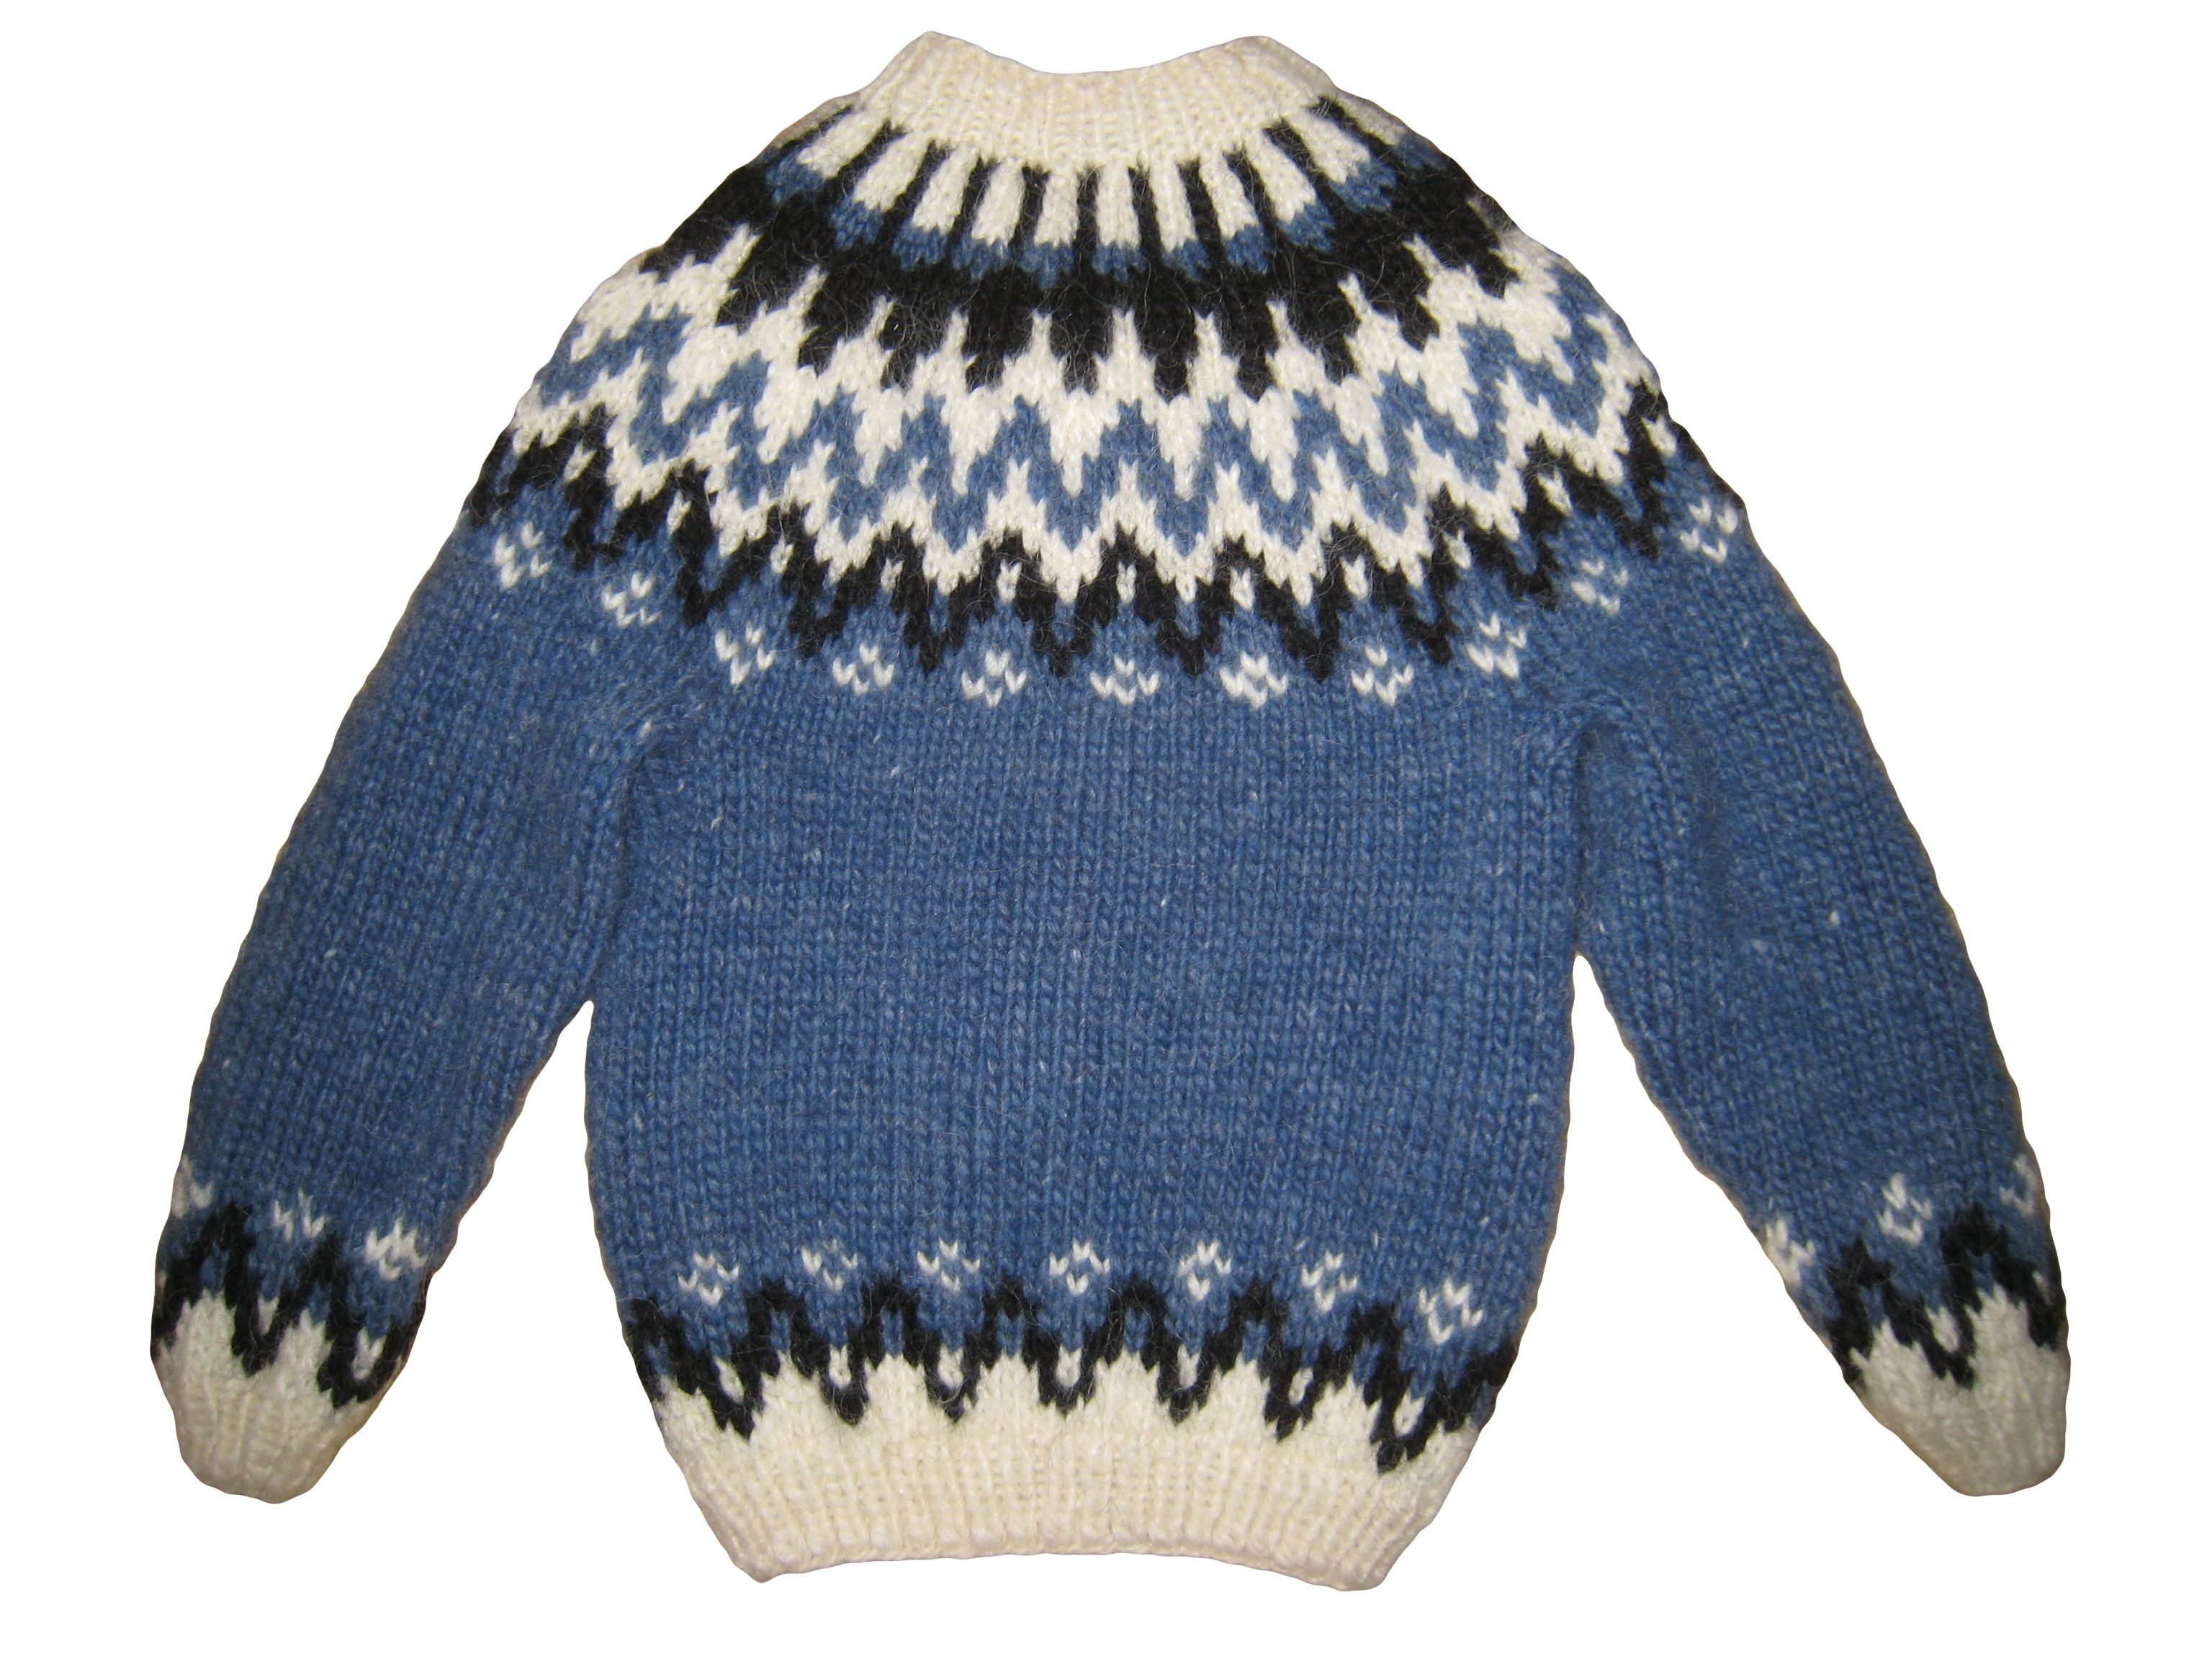 Free Easy Knitting Patterns | Free Knitting Patterns-Pullover ...